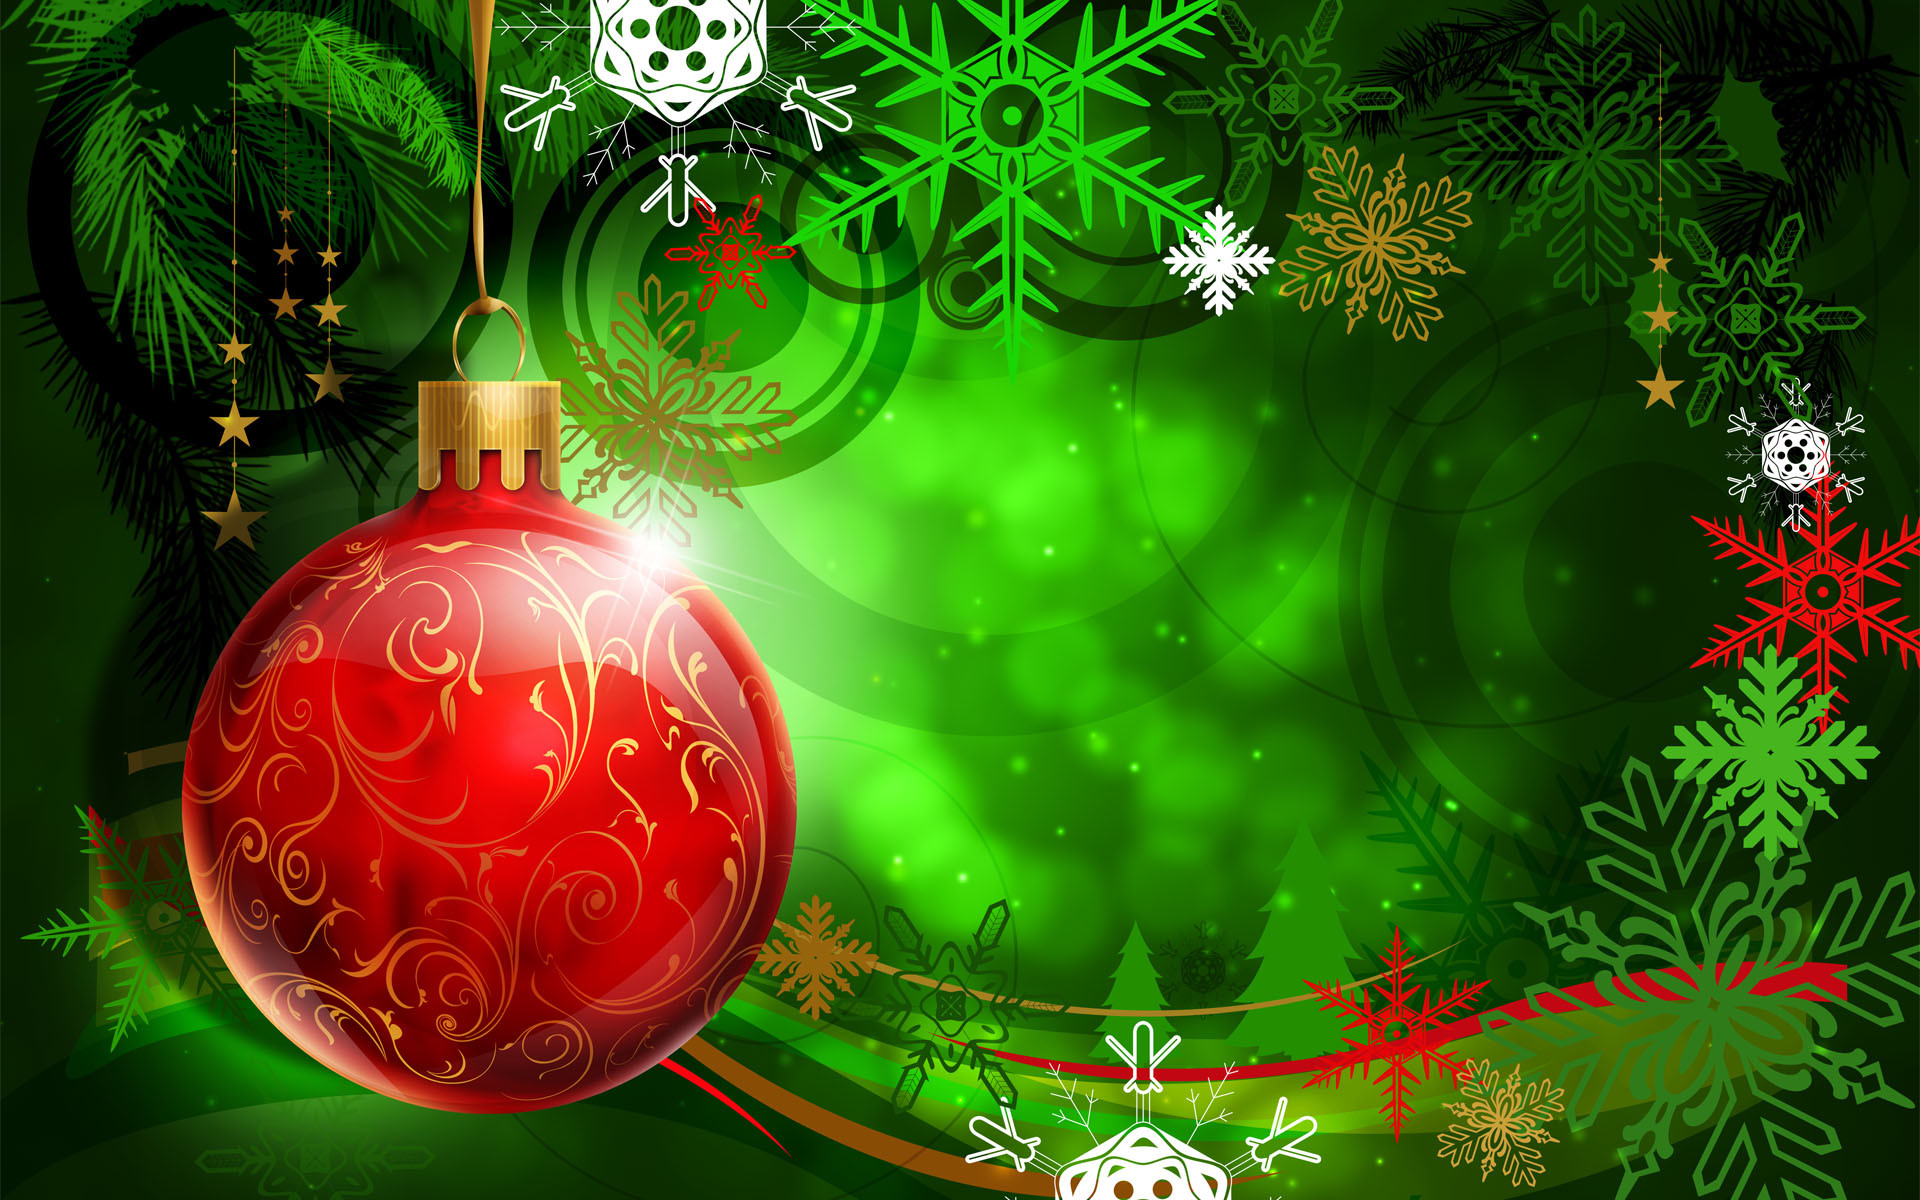 1920x1200 CHRISTMAS Jesus Desktop Screensavers | ... christmas decoration balls backgrounds  christmas home decoration